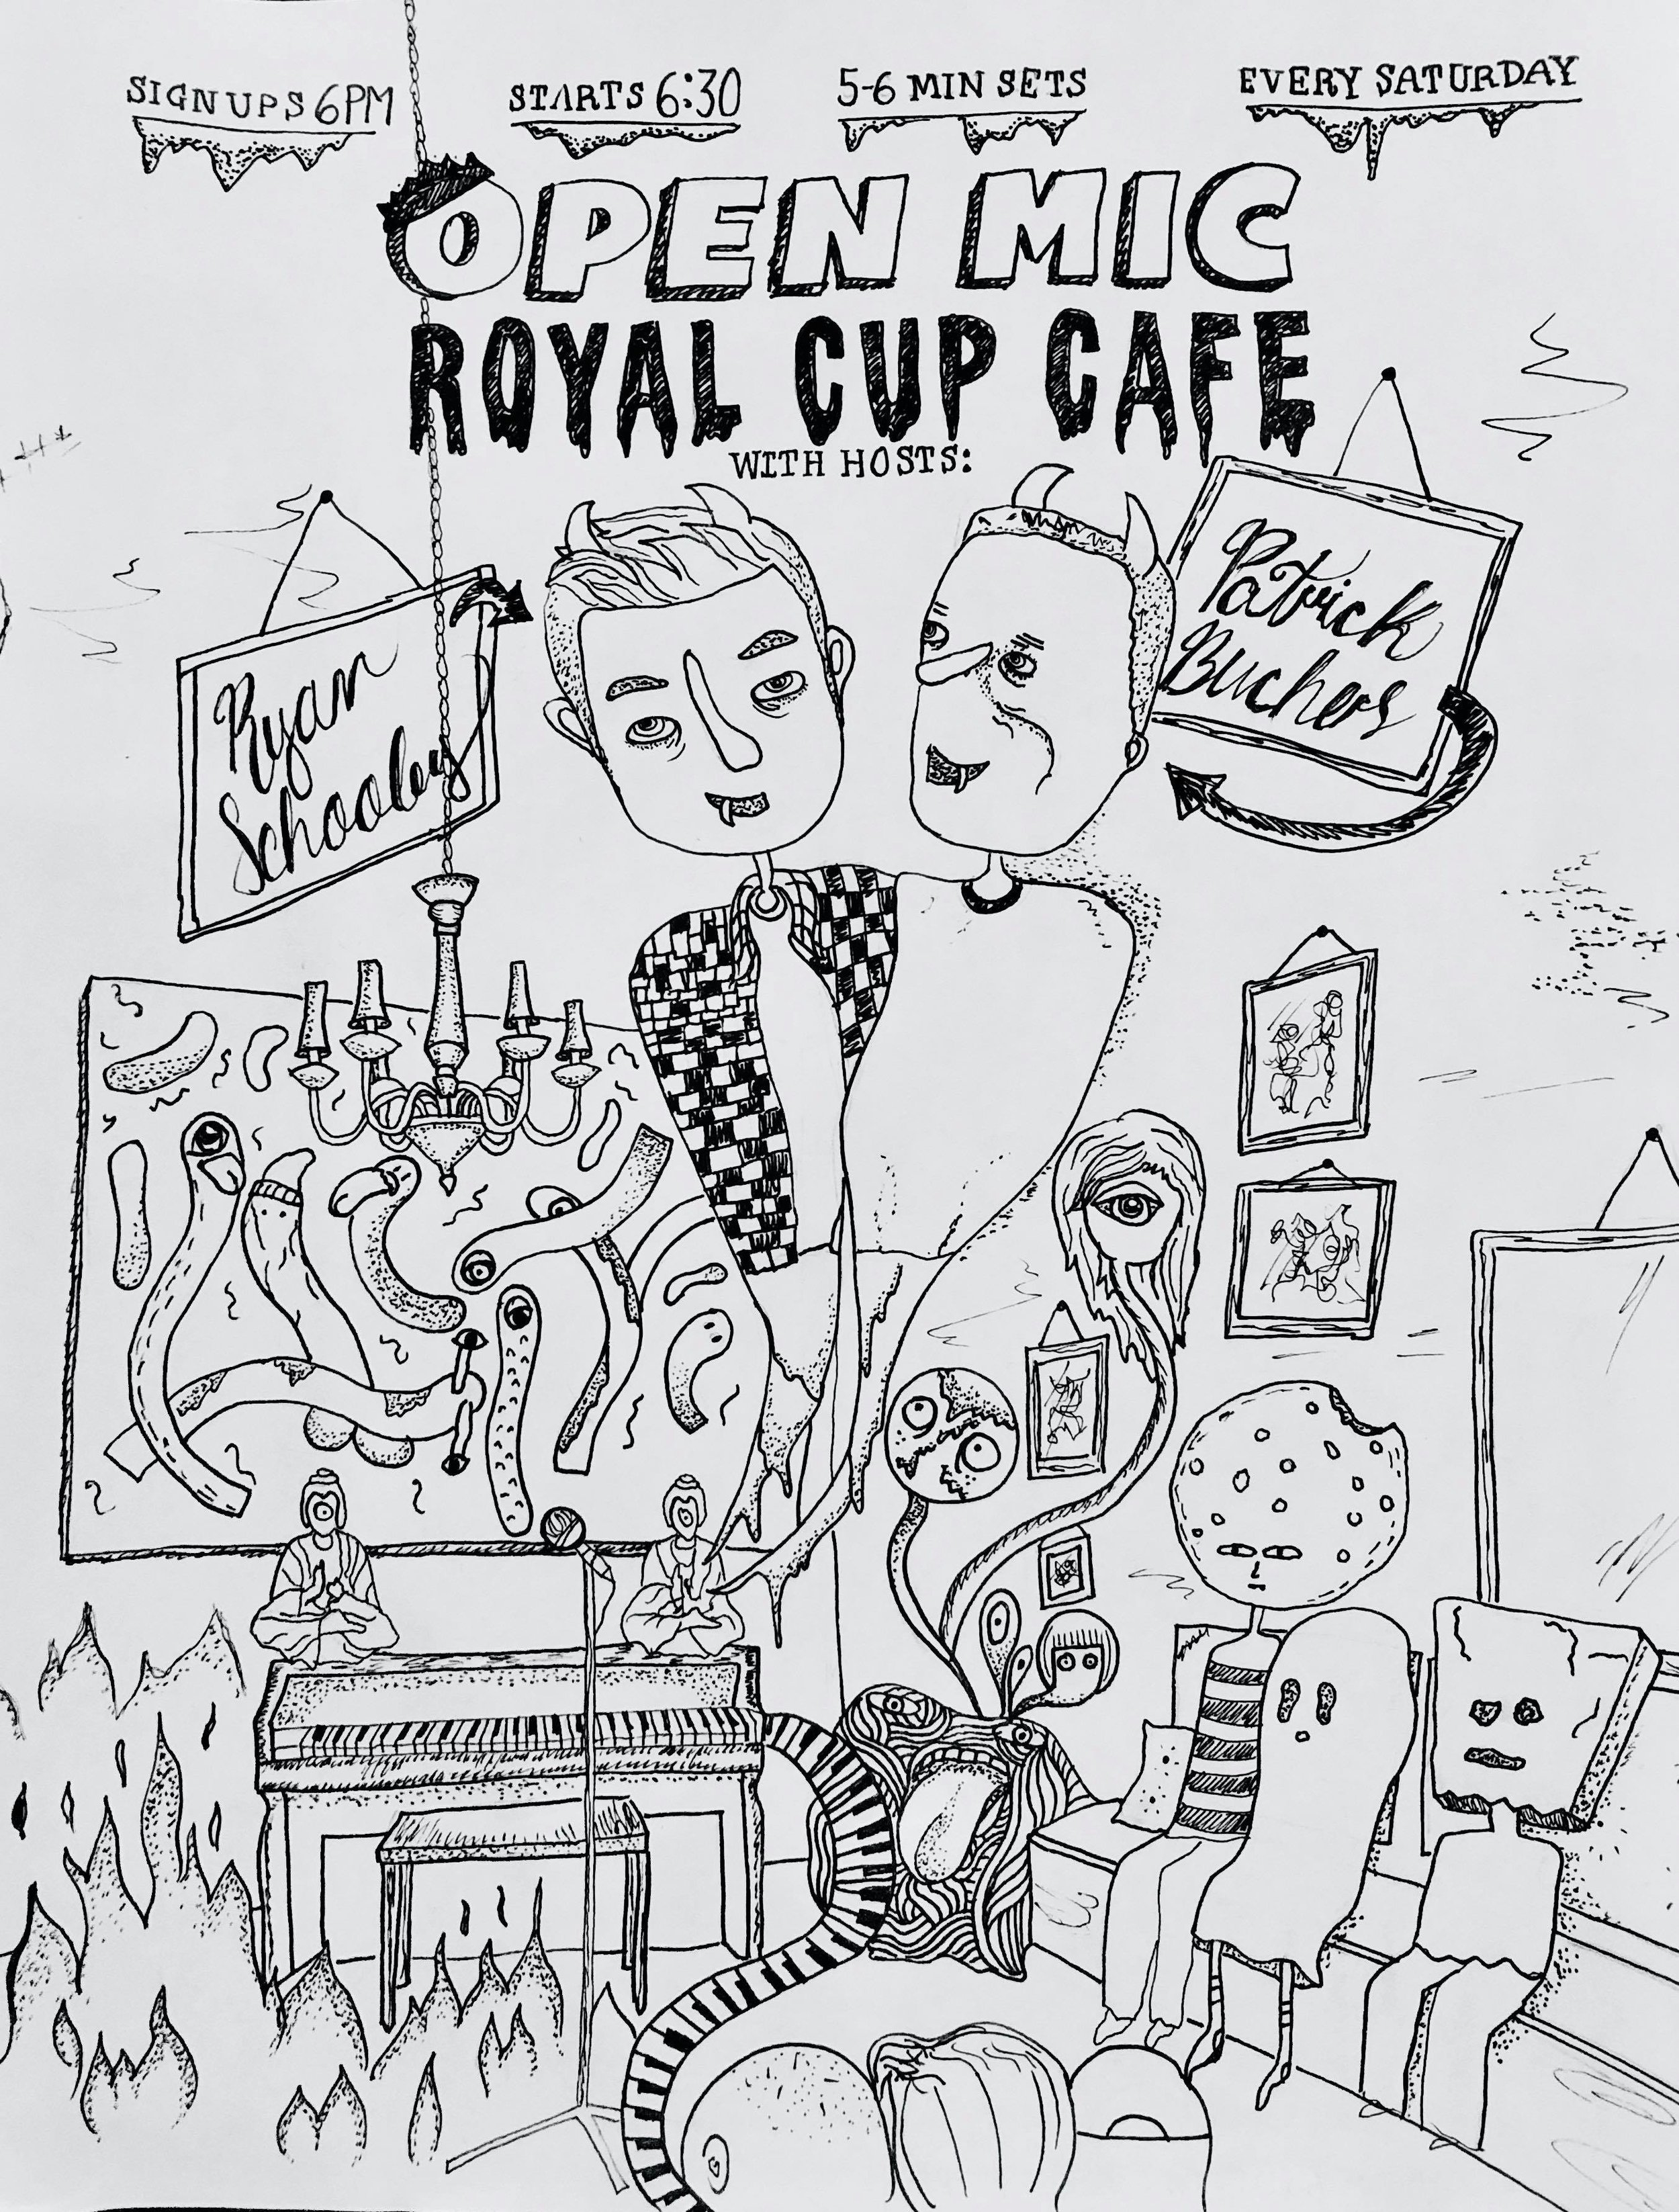 Berenice really nailed this Royal Cup Cafe flyer- that looks exactly like the room!